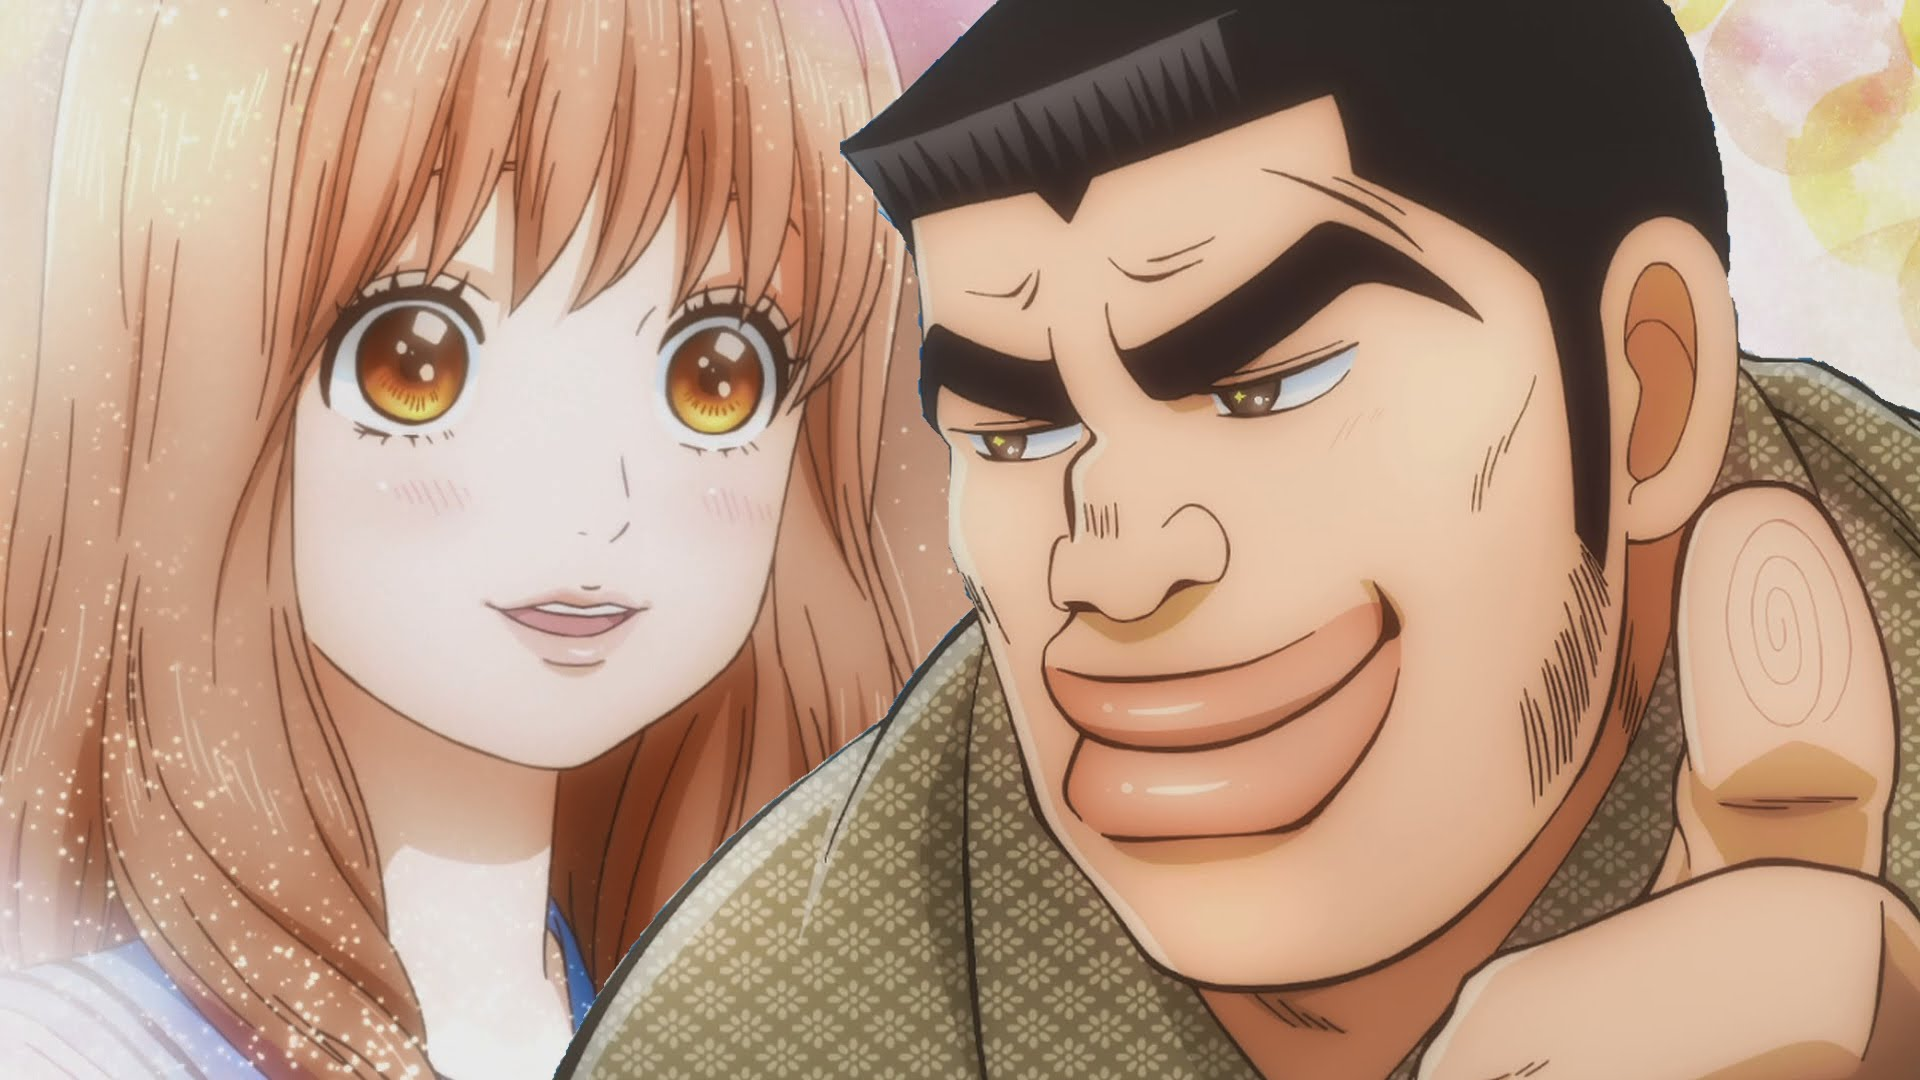 Anal Girl in Takeo